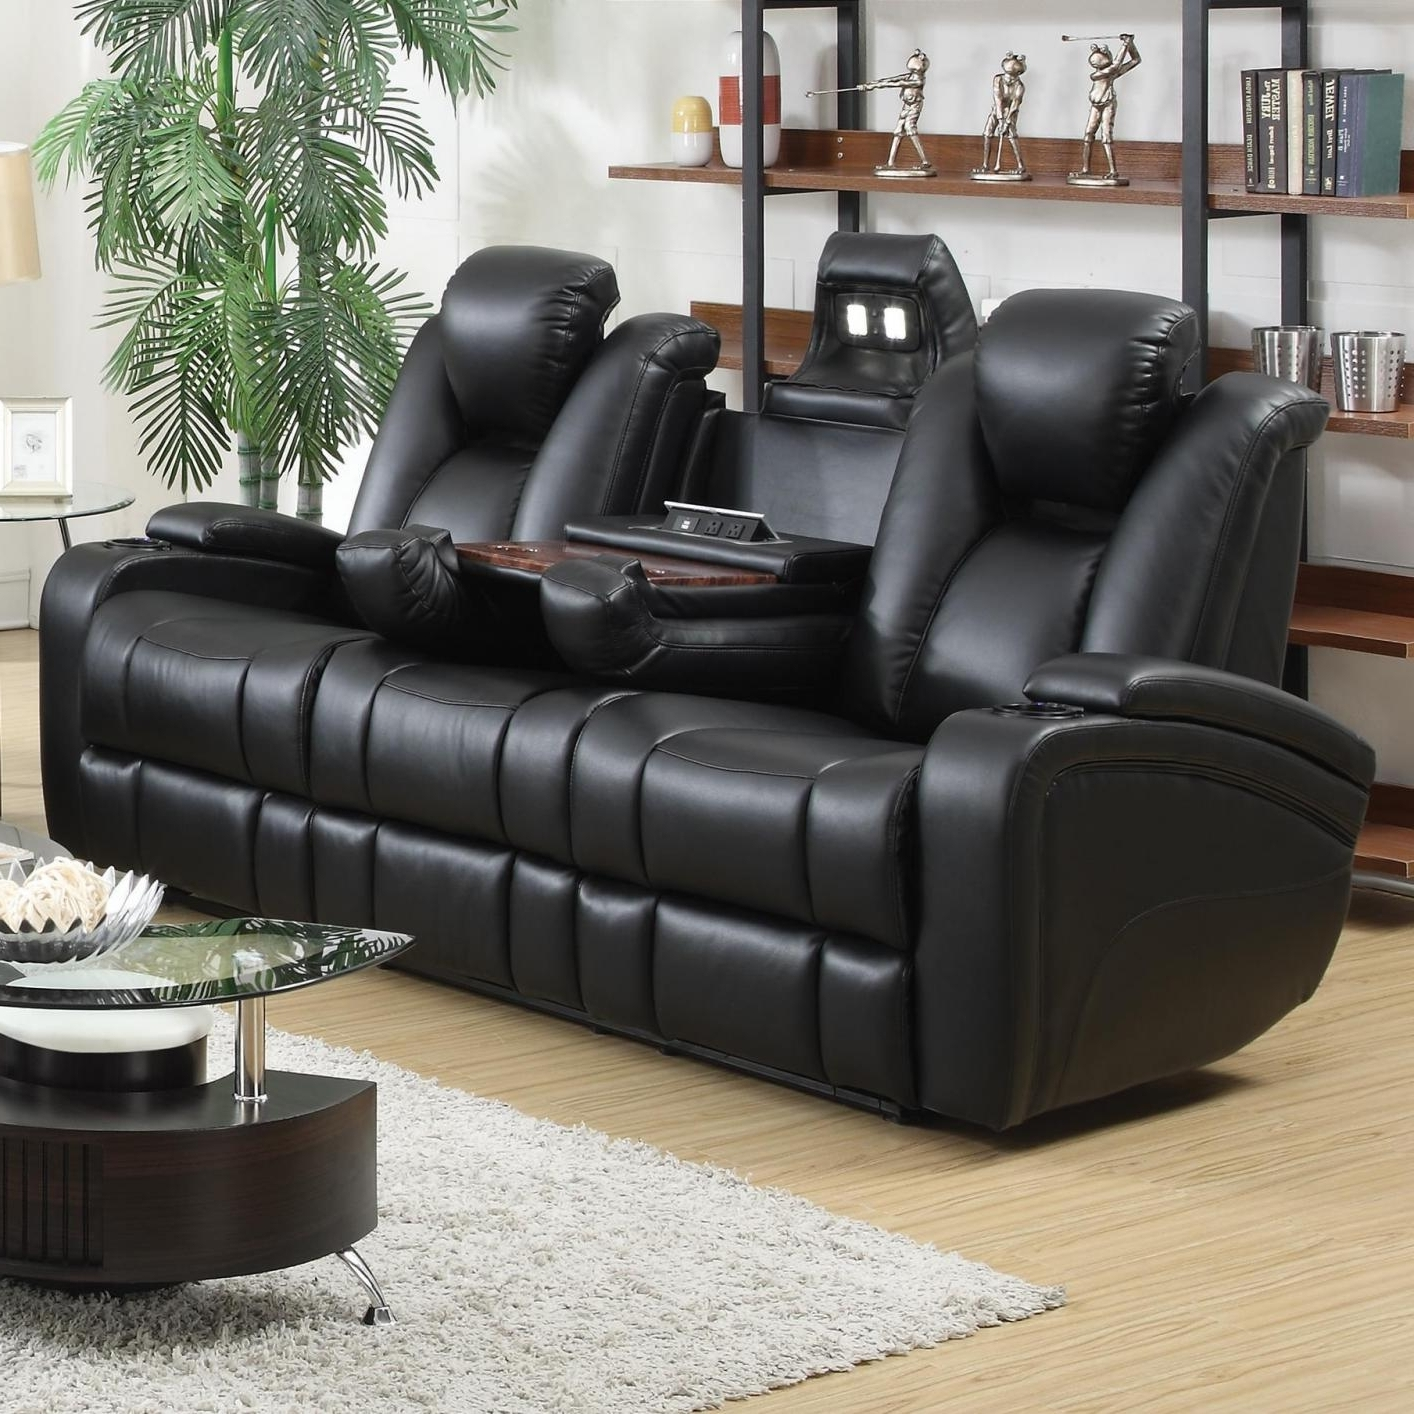 Uncategorized : Reclining Sofa And Loveseat Sets Inside Best With Regard To Widely Used Red Leather Reclining Sofas And Loveseats (View 13 of 15)